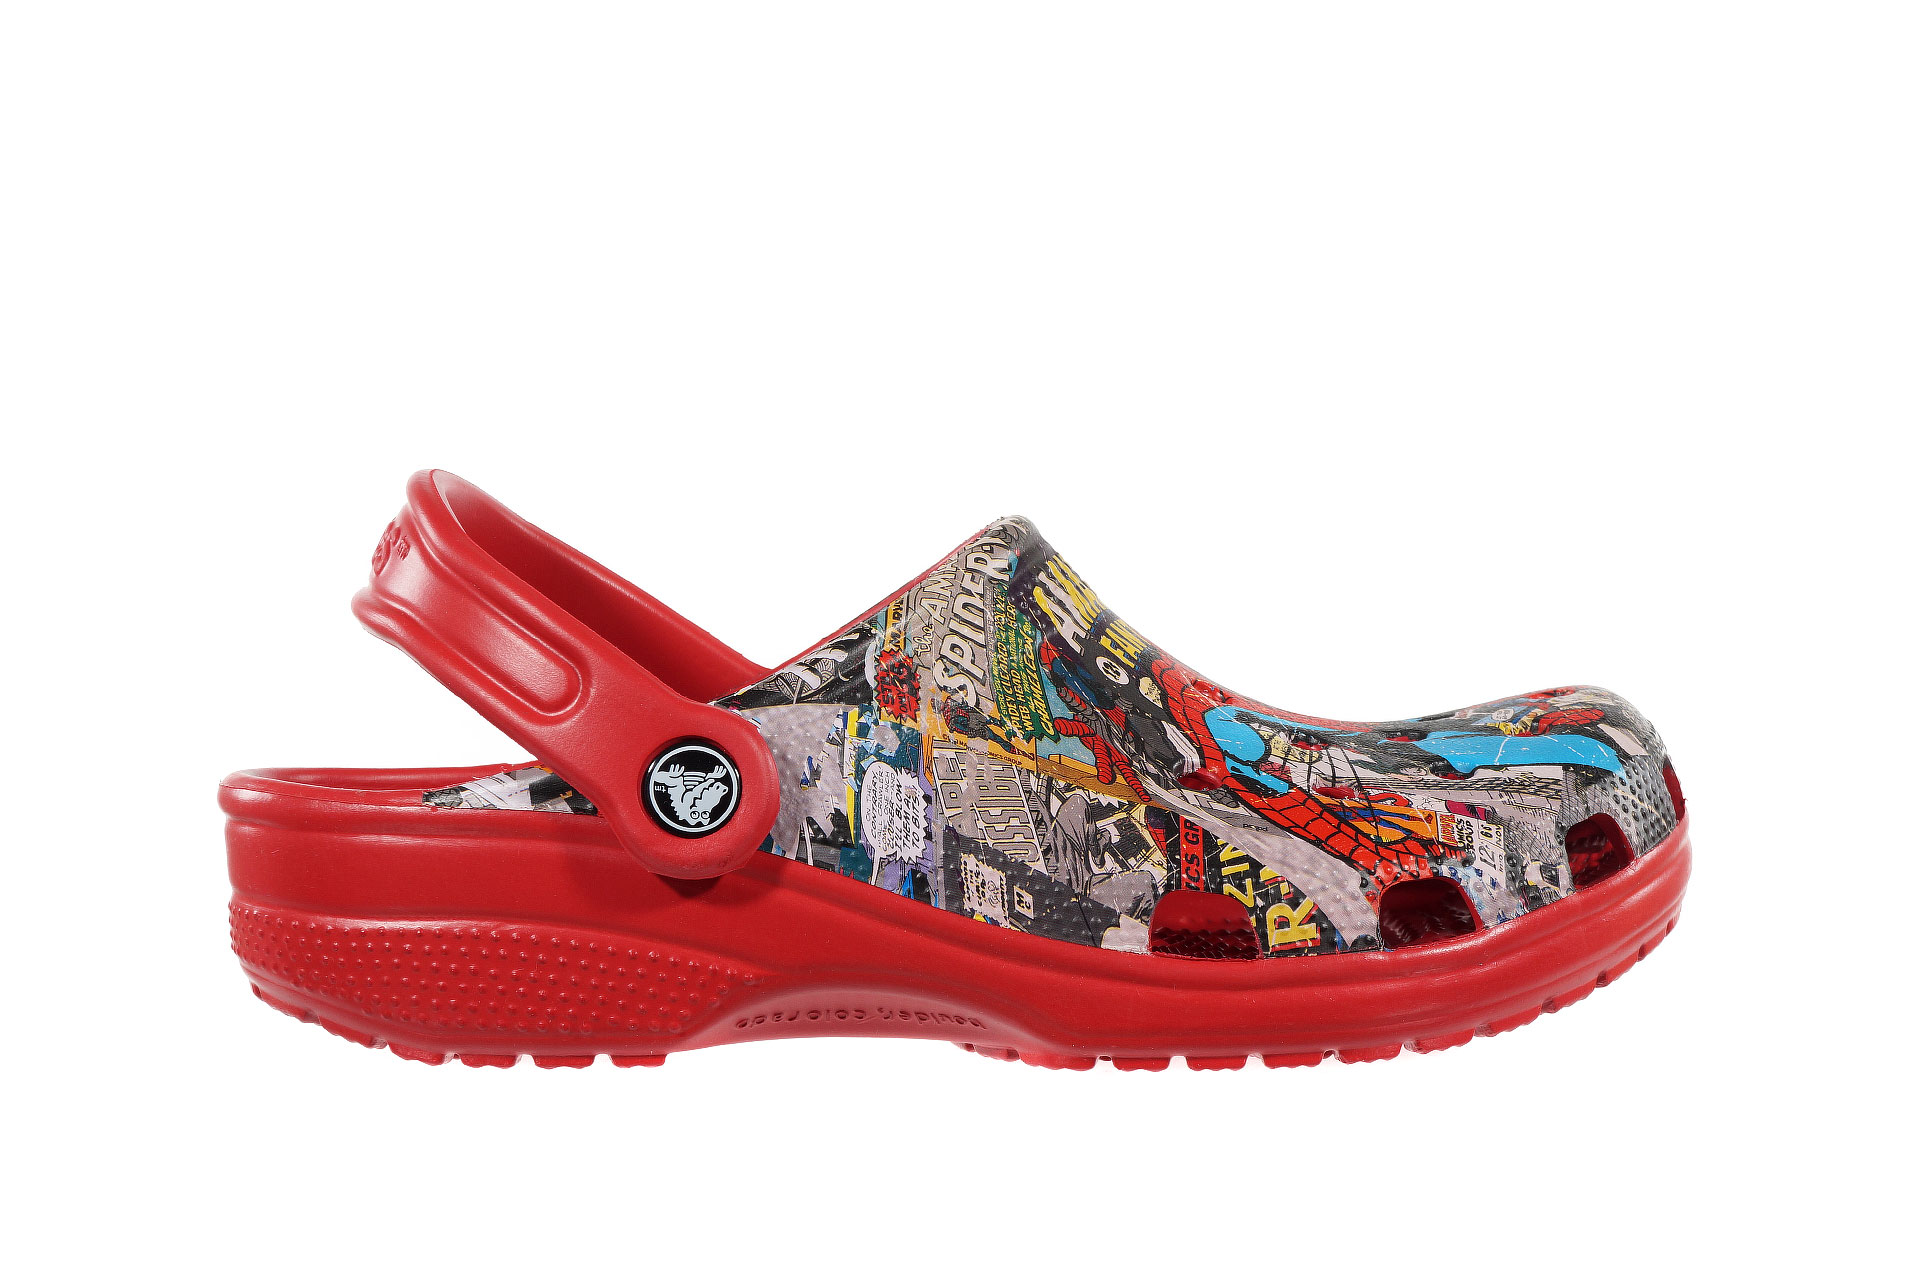 ad09685a8 Crocs Classic Spiderman Clog (1-NC) buy online shop vintageshoes.ru